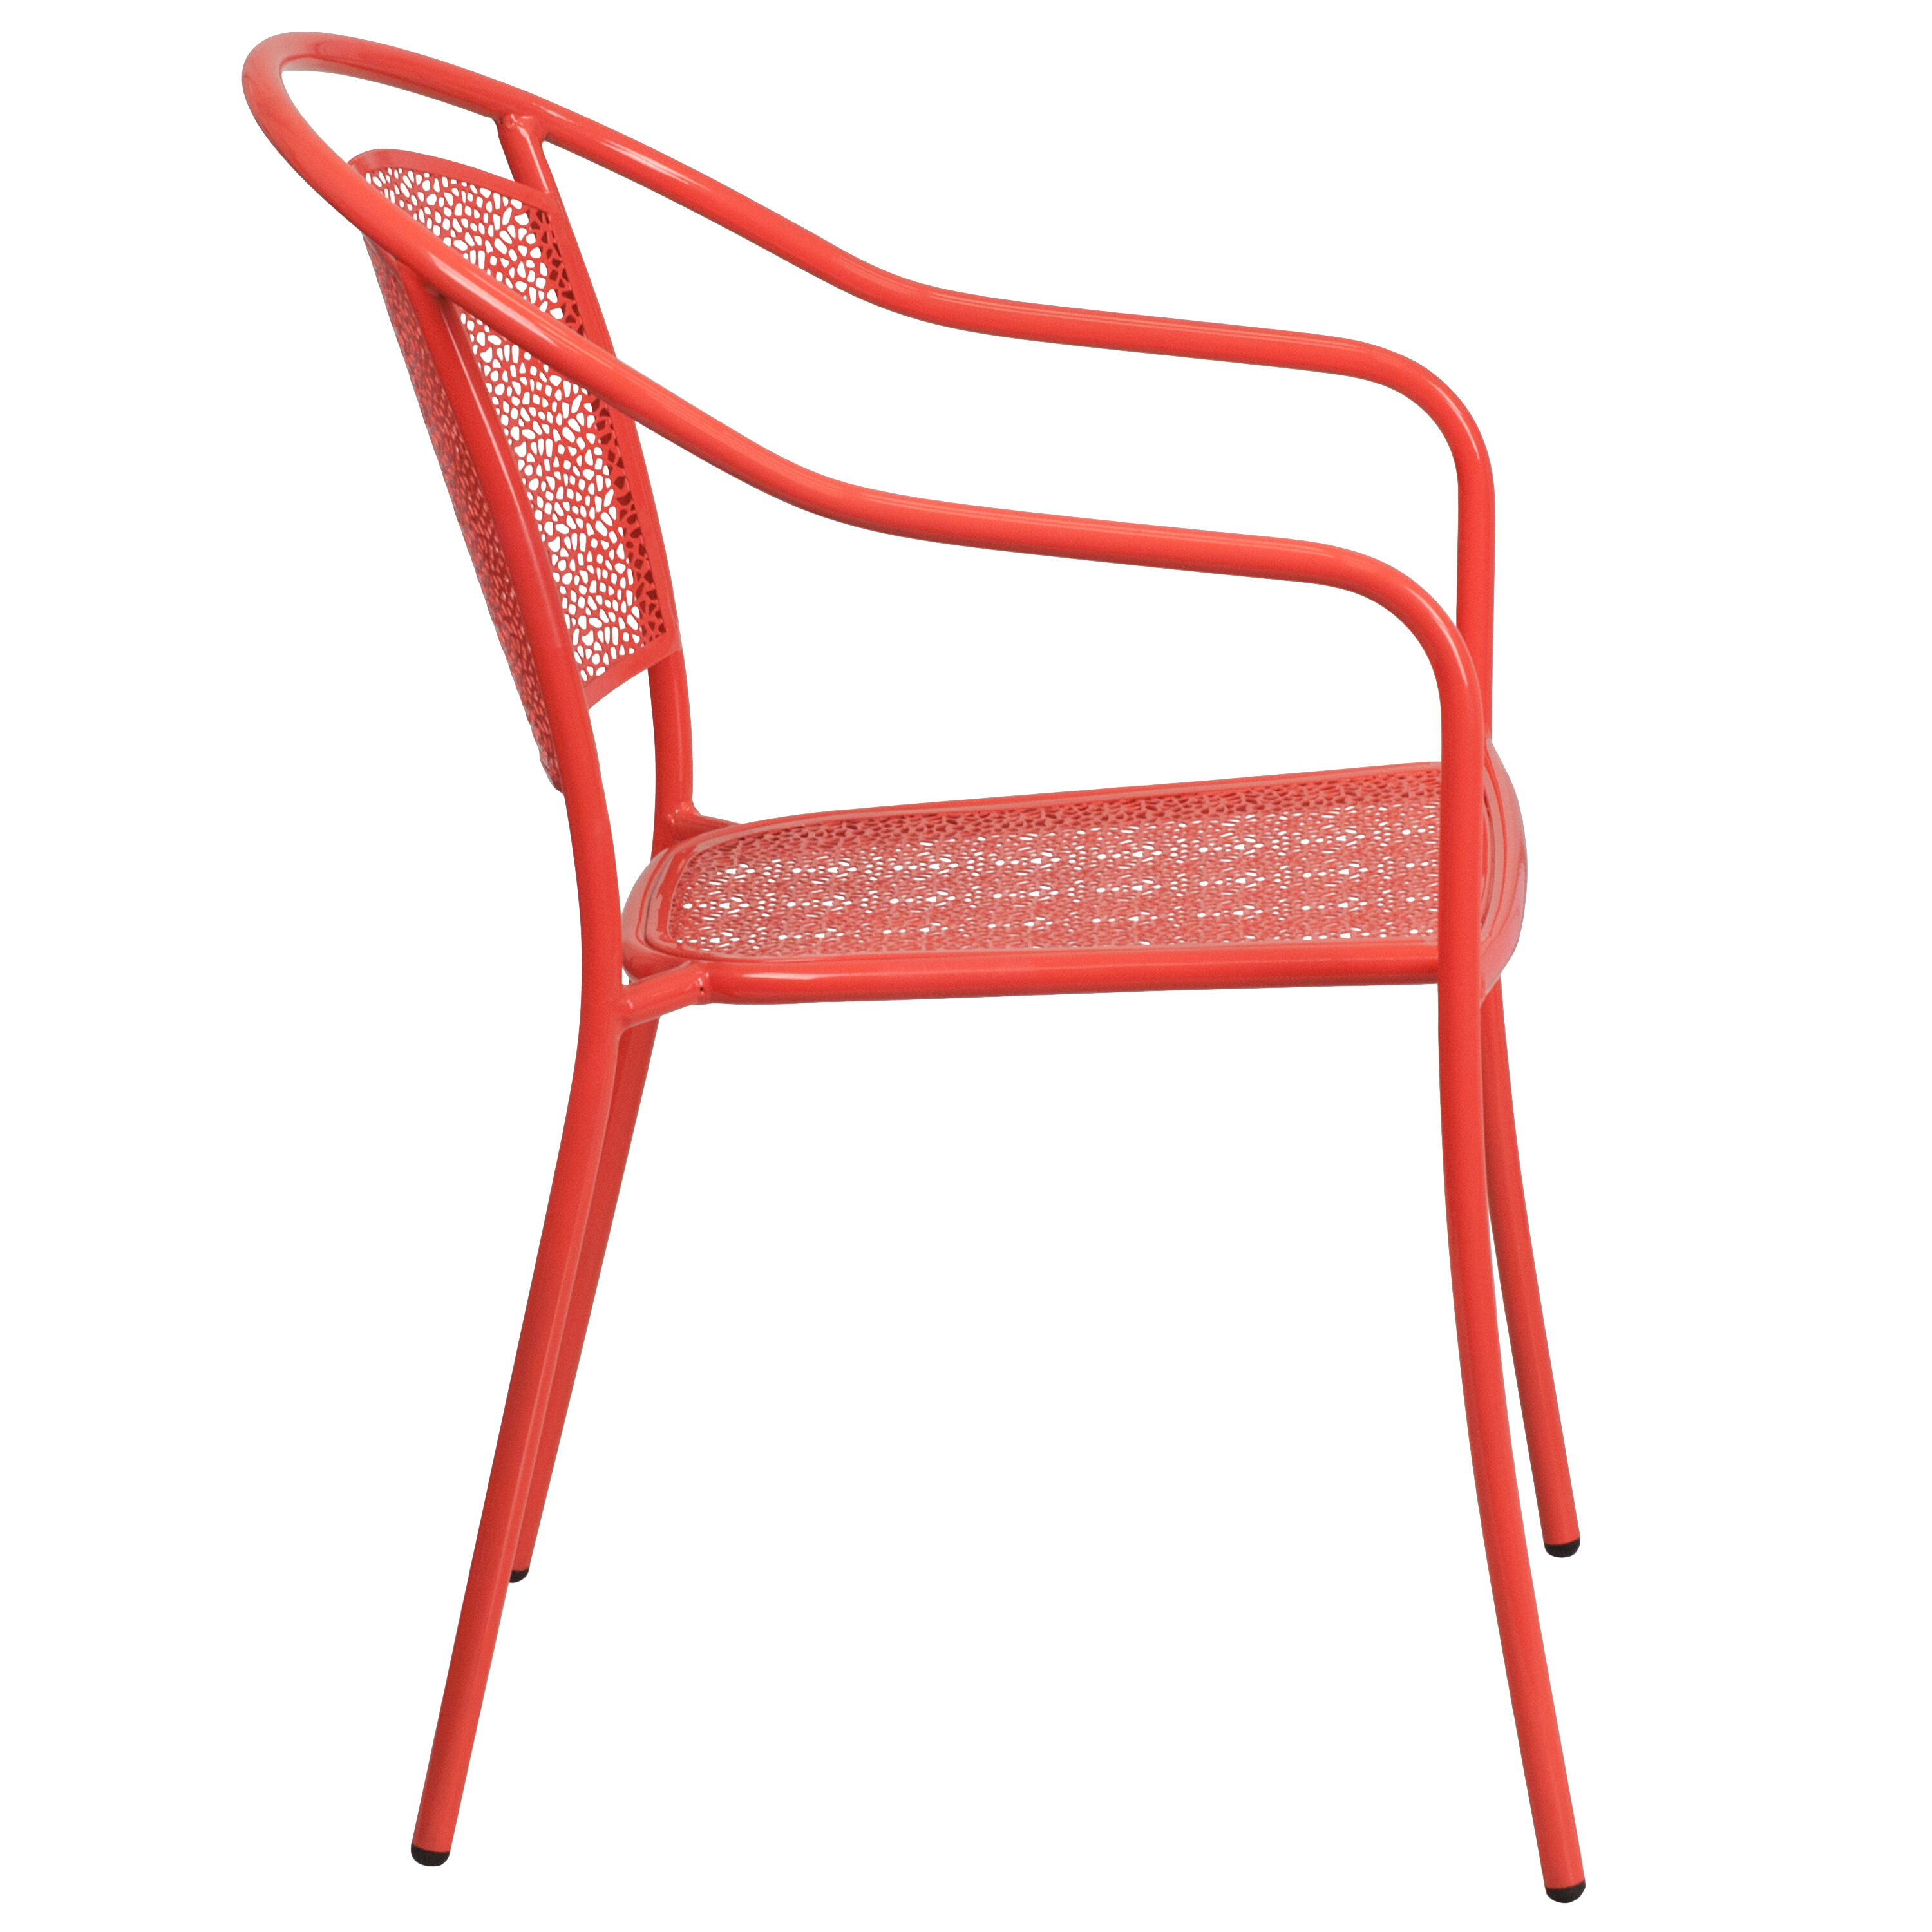 ... Our Coral Indoor Outdoor Steel Patio Arm Chair With Round Back Is On  Sale Now ...